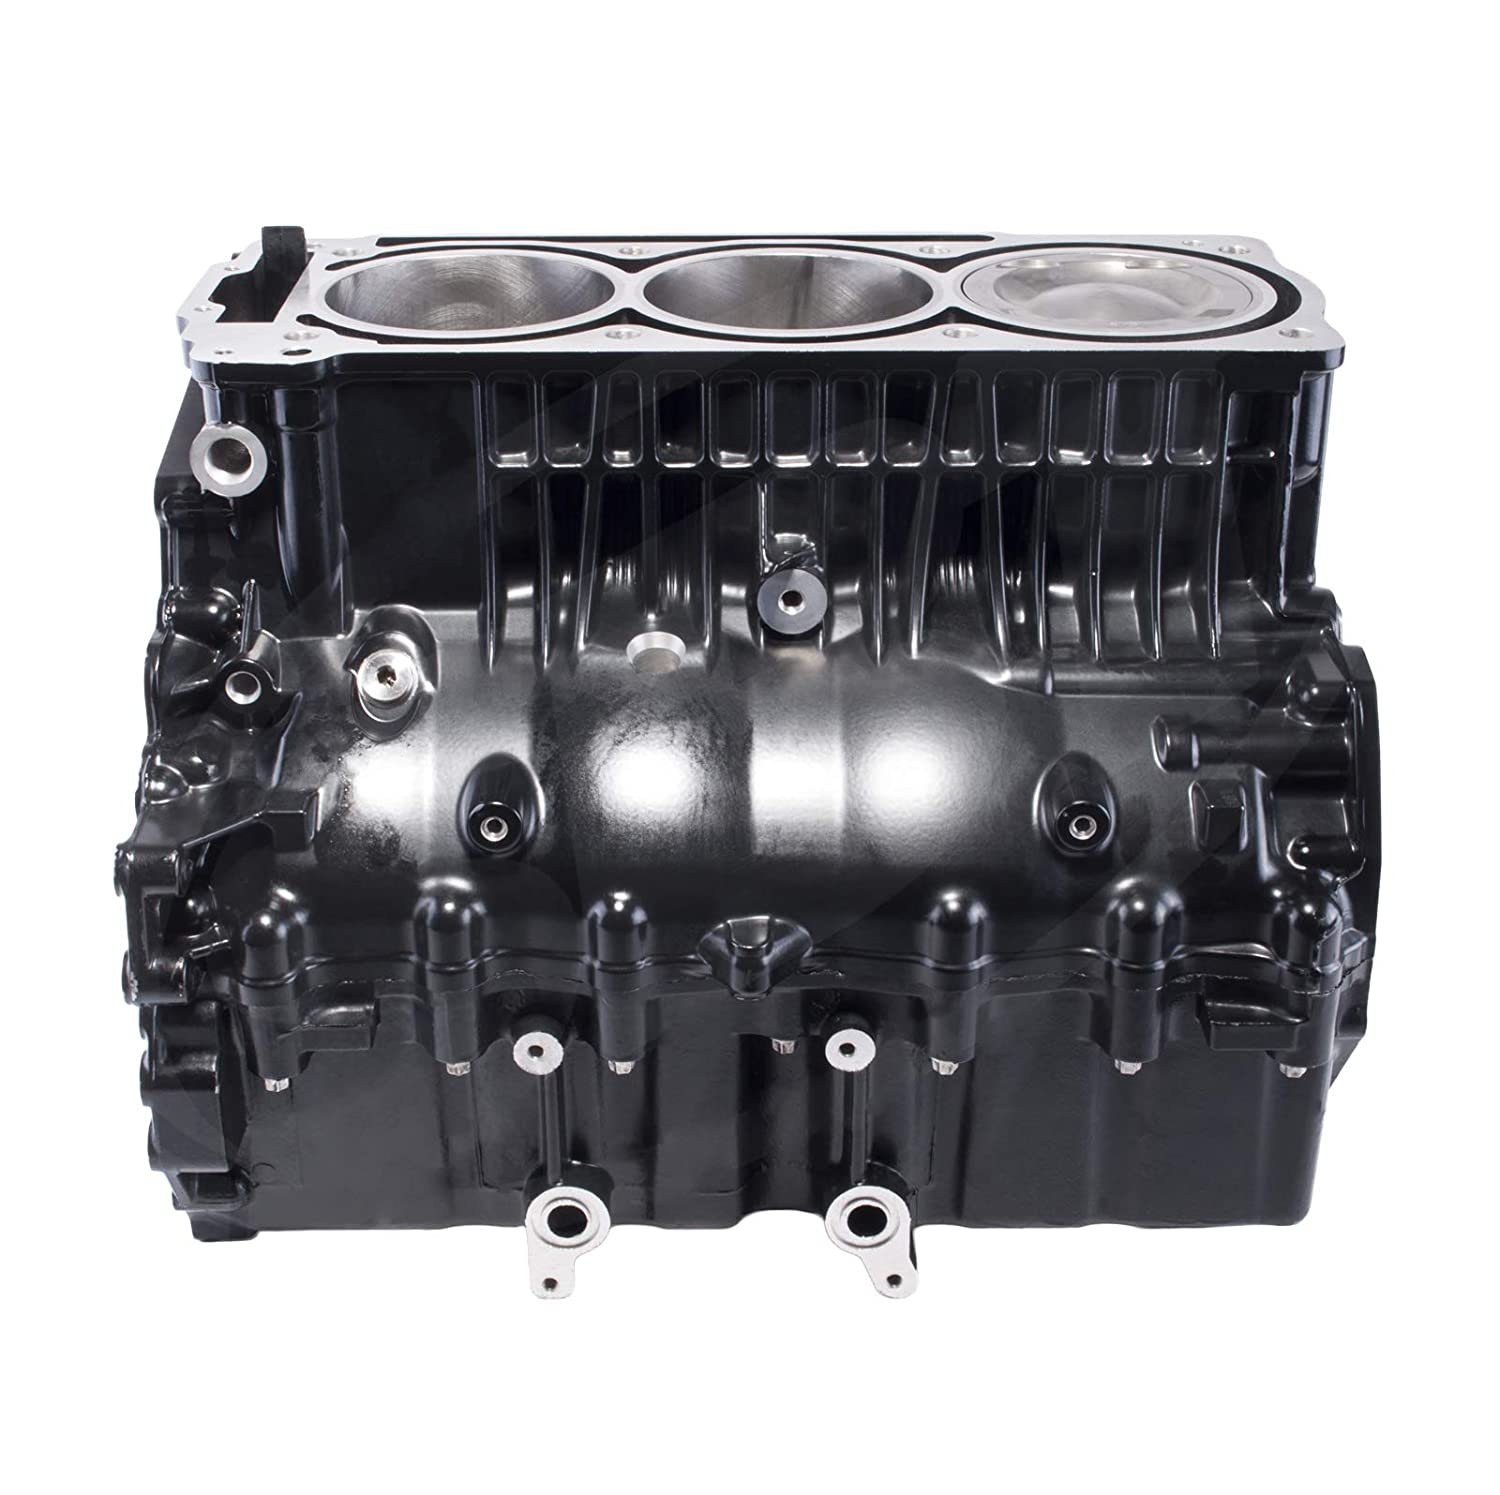 all except 300hp SBT Short Block Engine Compatible with SeaDoo 4-Tec Supercharged 2006-2016